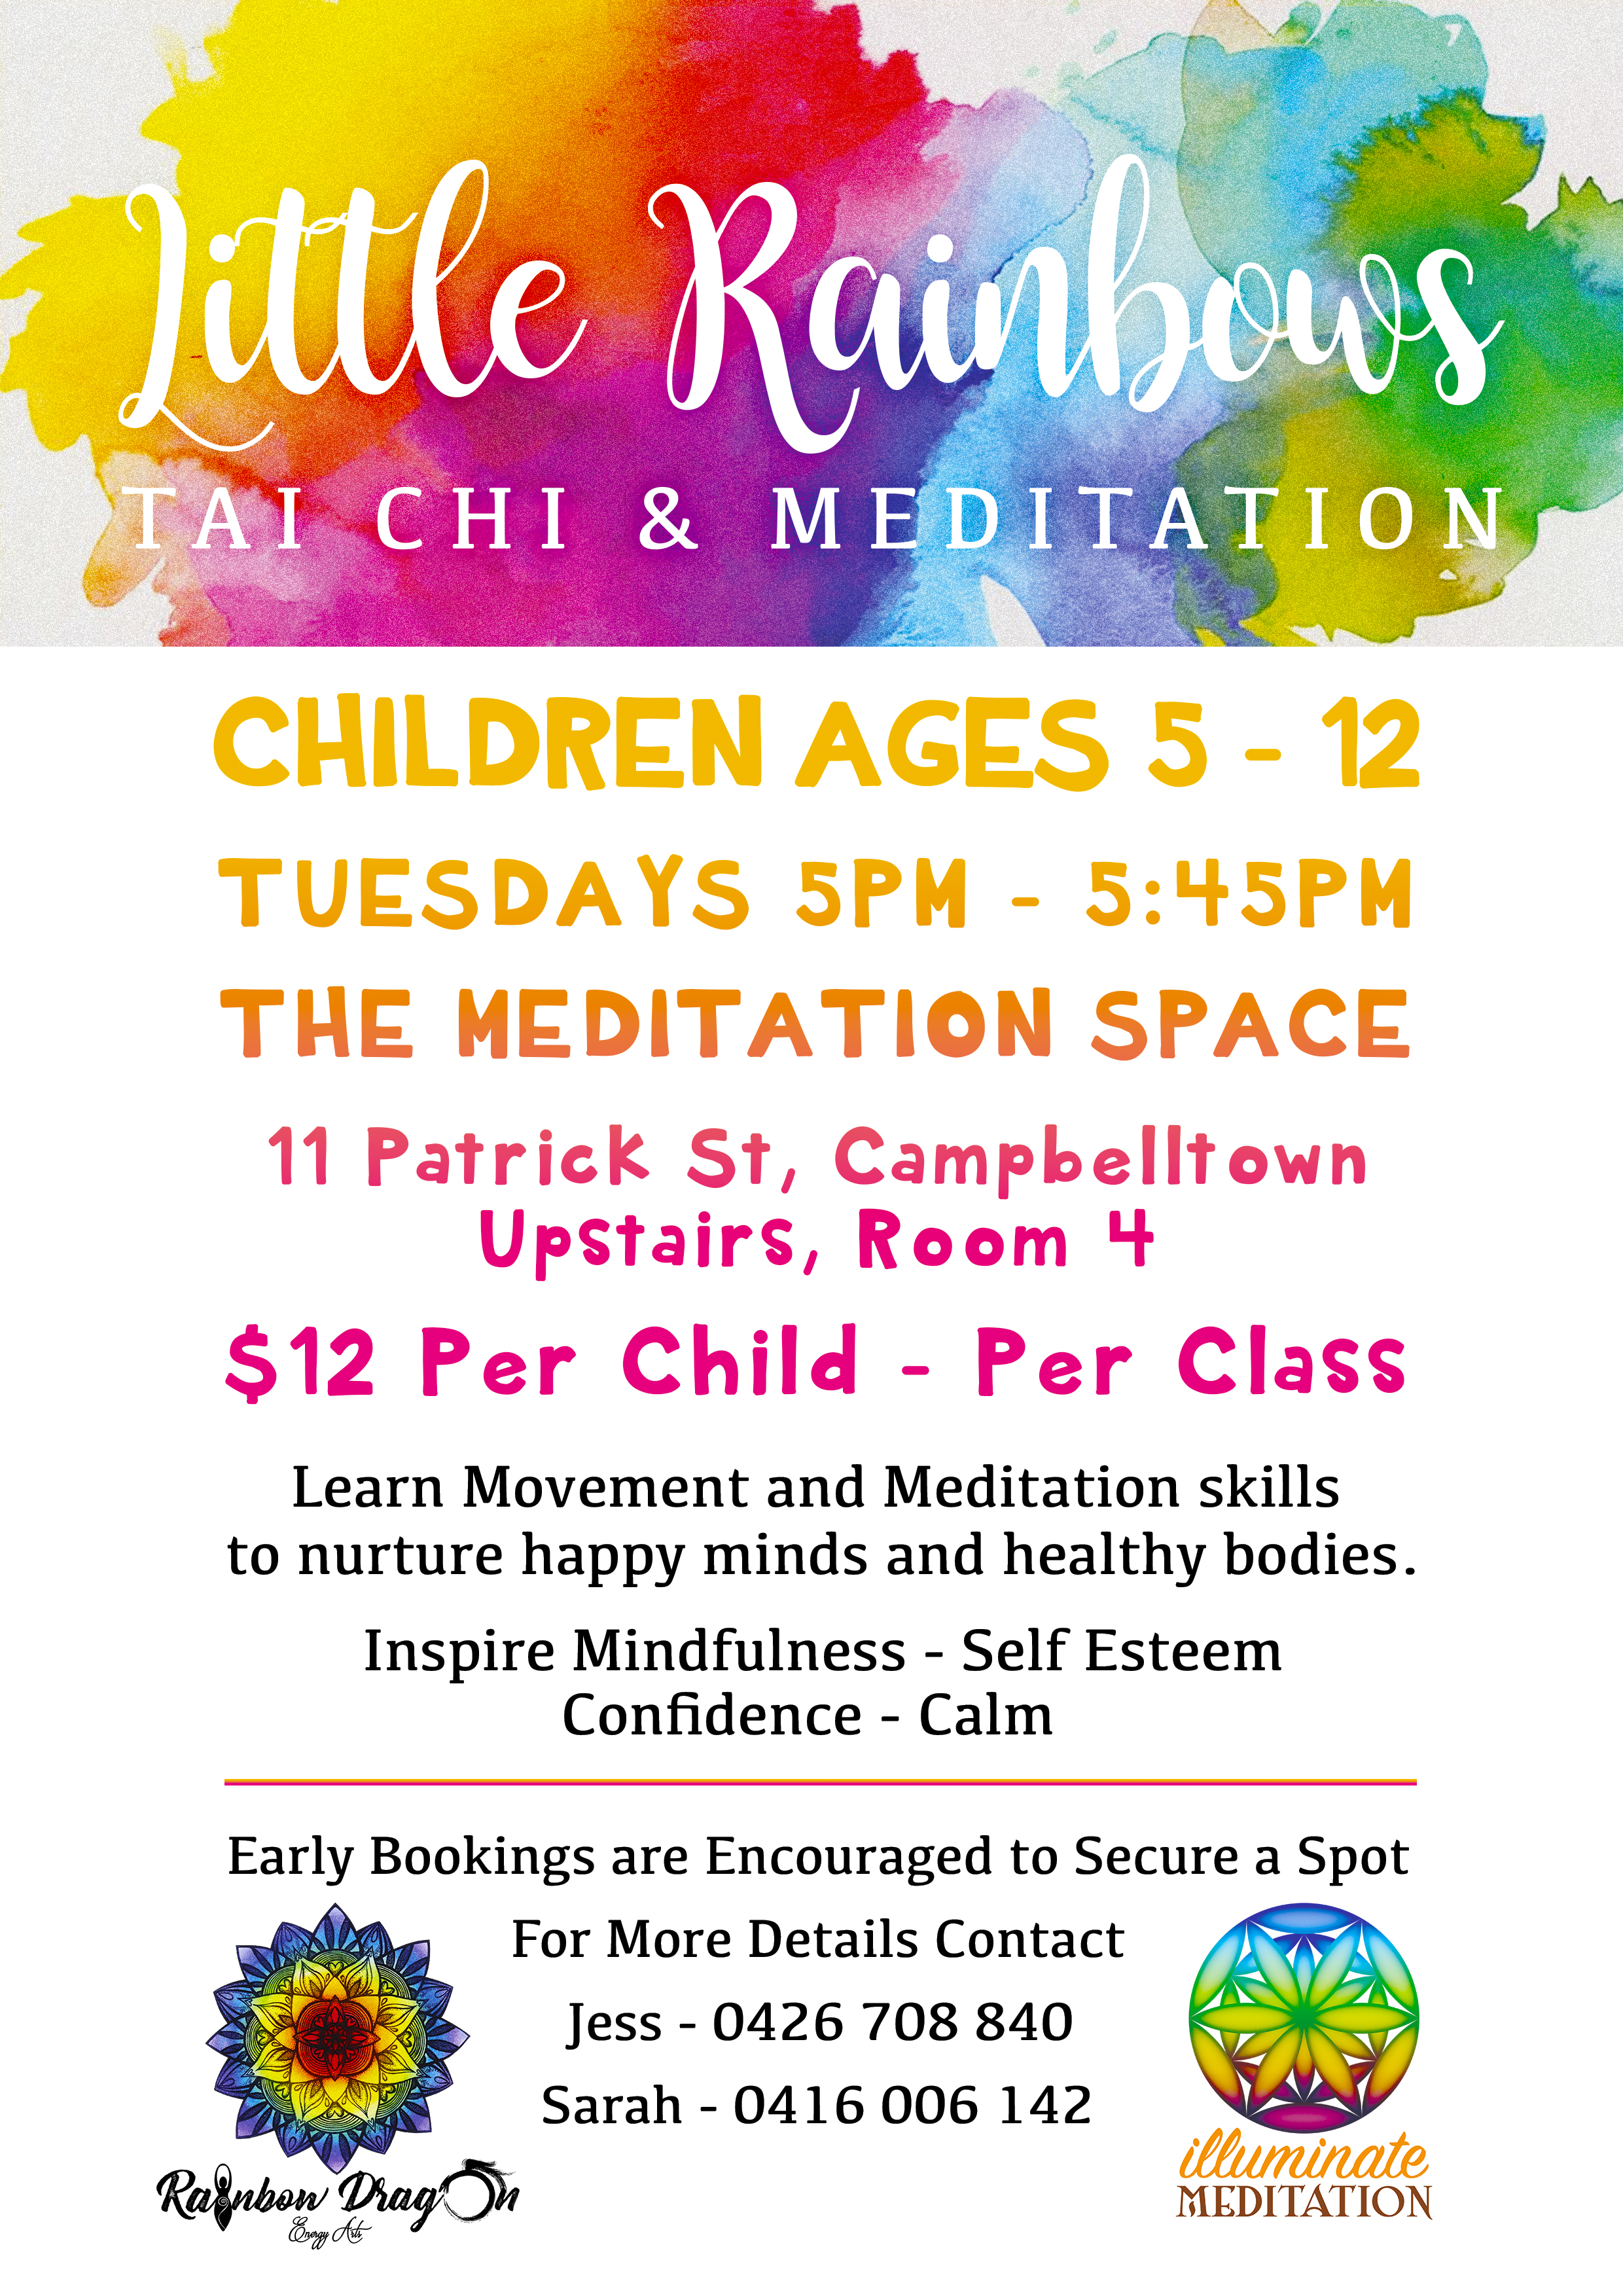 Poster Flyer for 'Little Rainbows' a Local Tai Chi & Meditation Class for Children